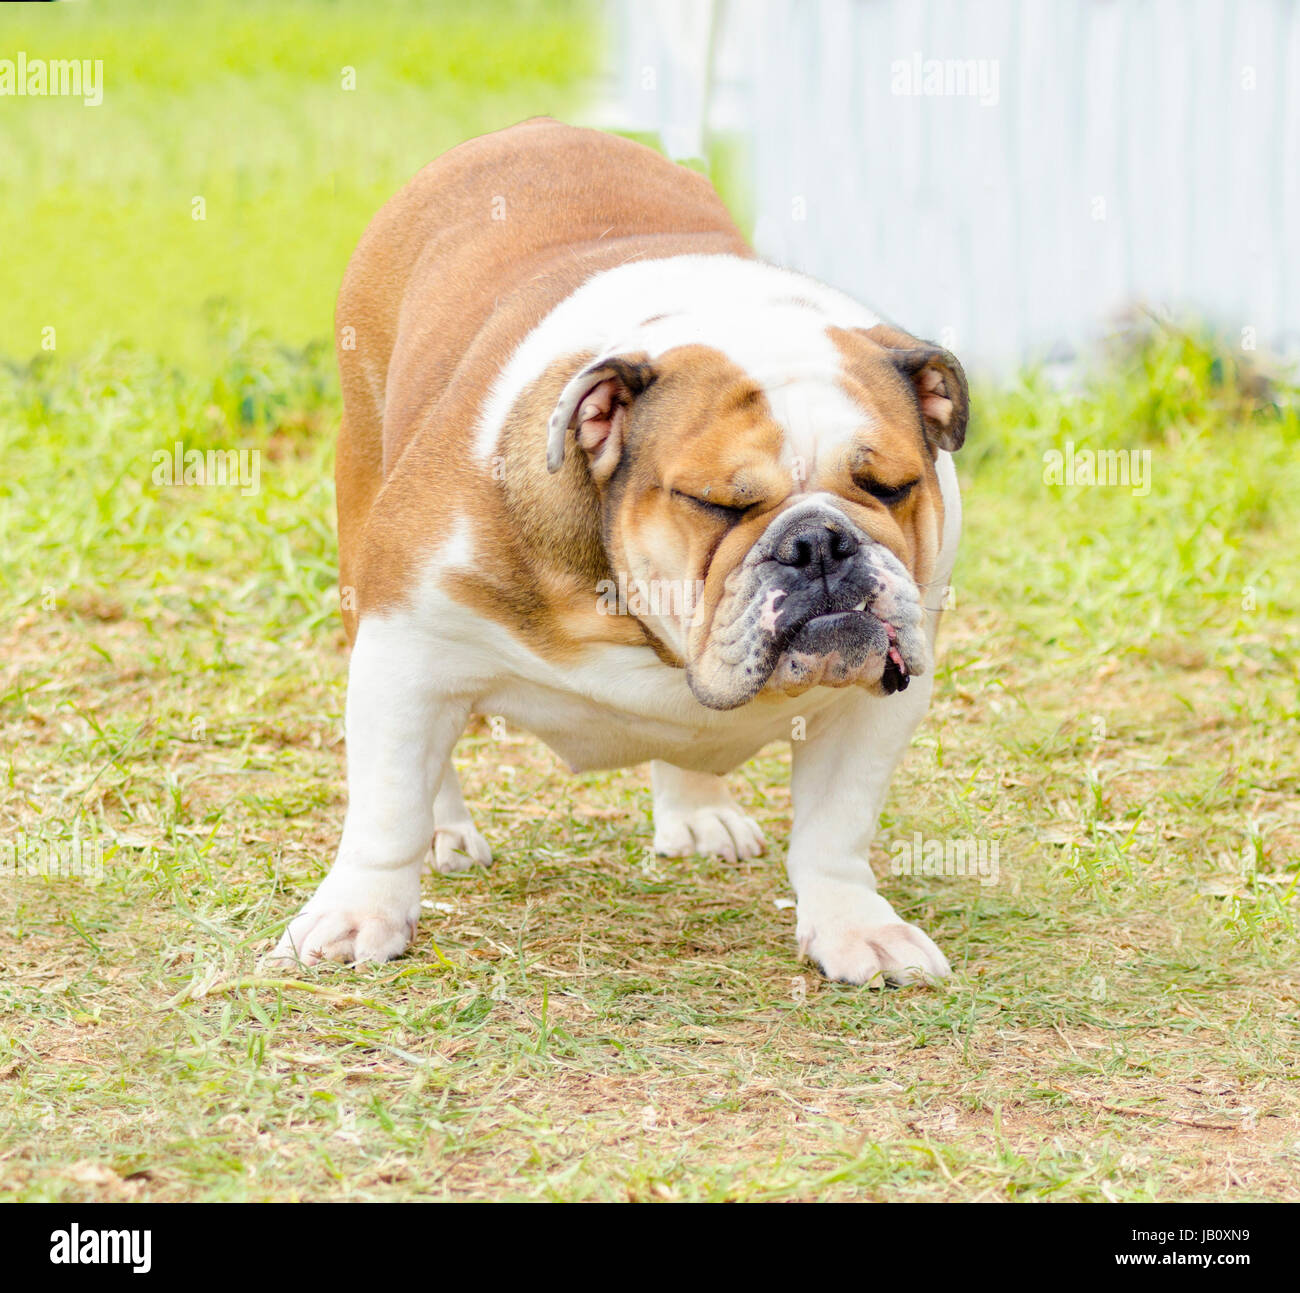 A small, young, beautiful, brown and white English Bulldog standing on the lawn whilehaving its eyes closed and Stock Photo